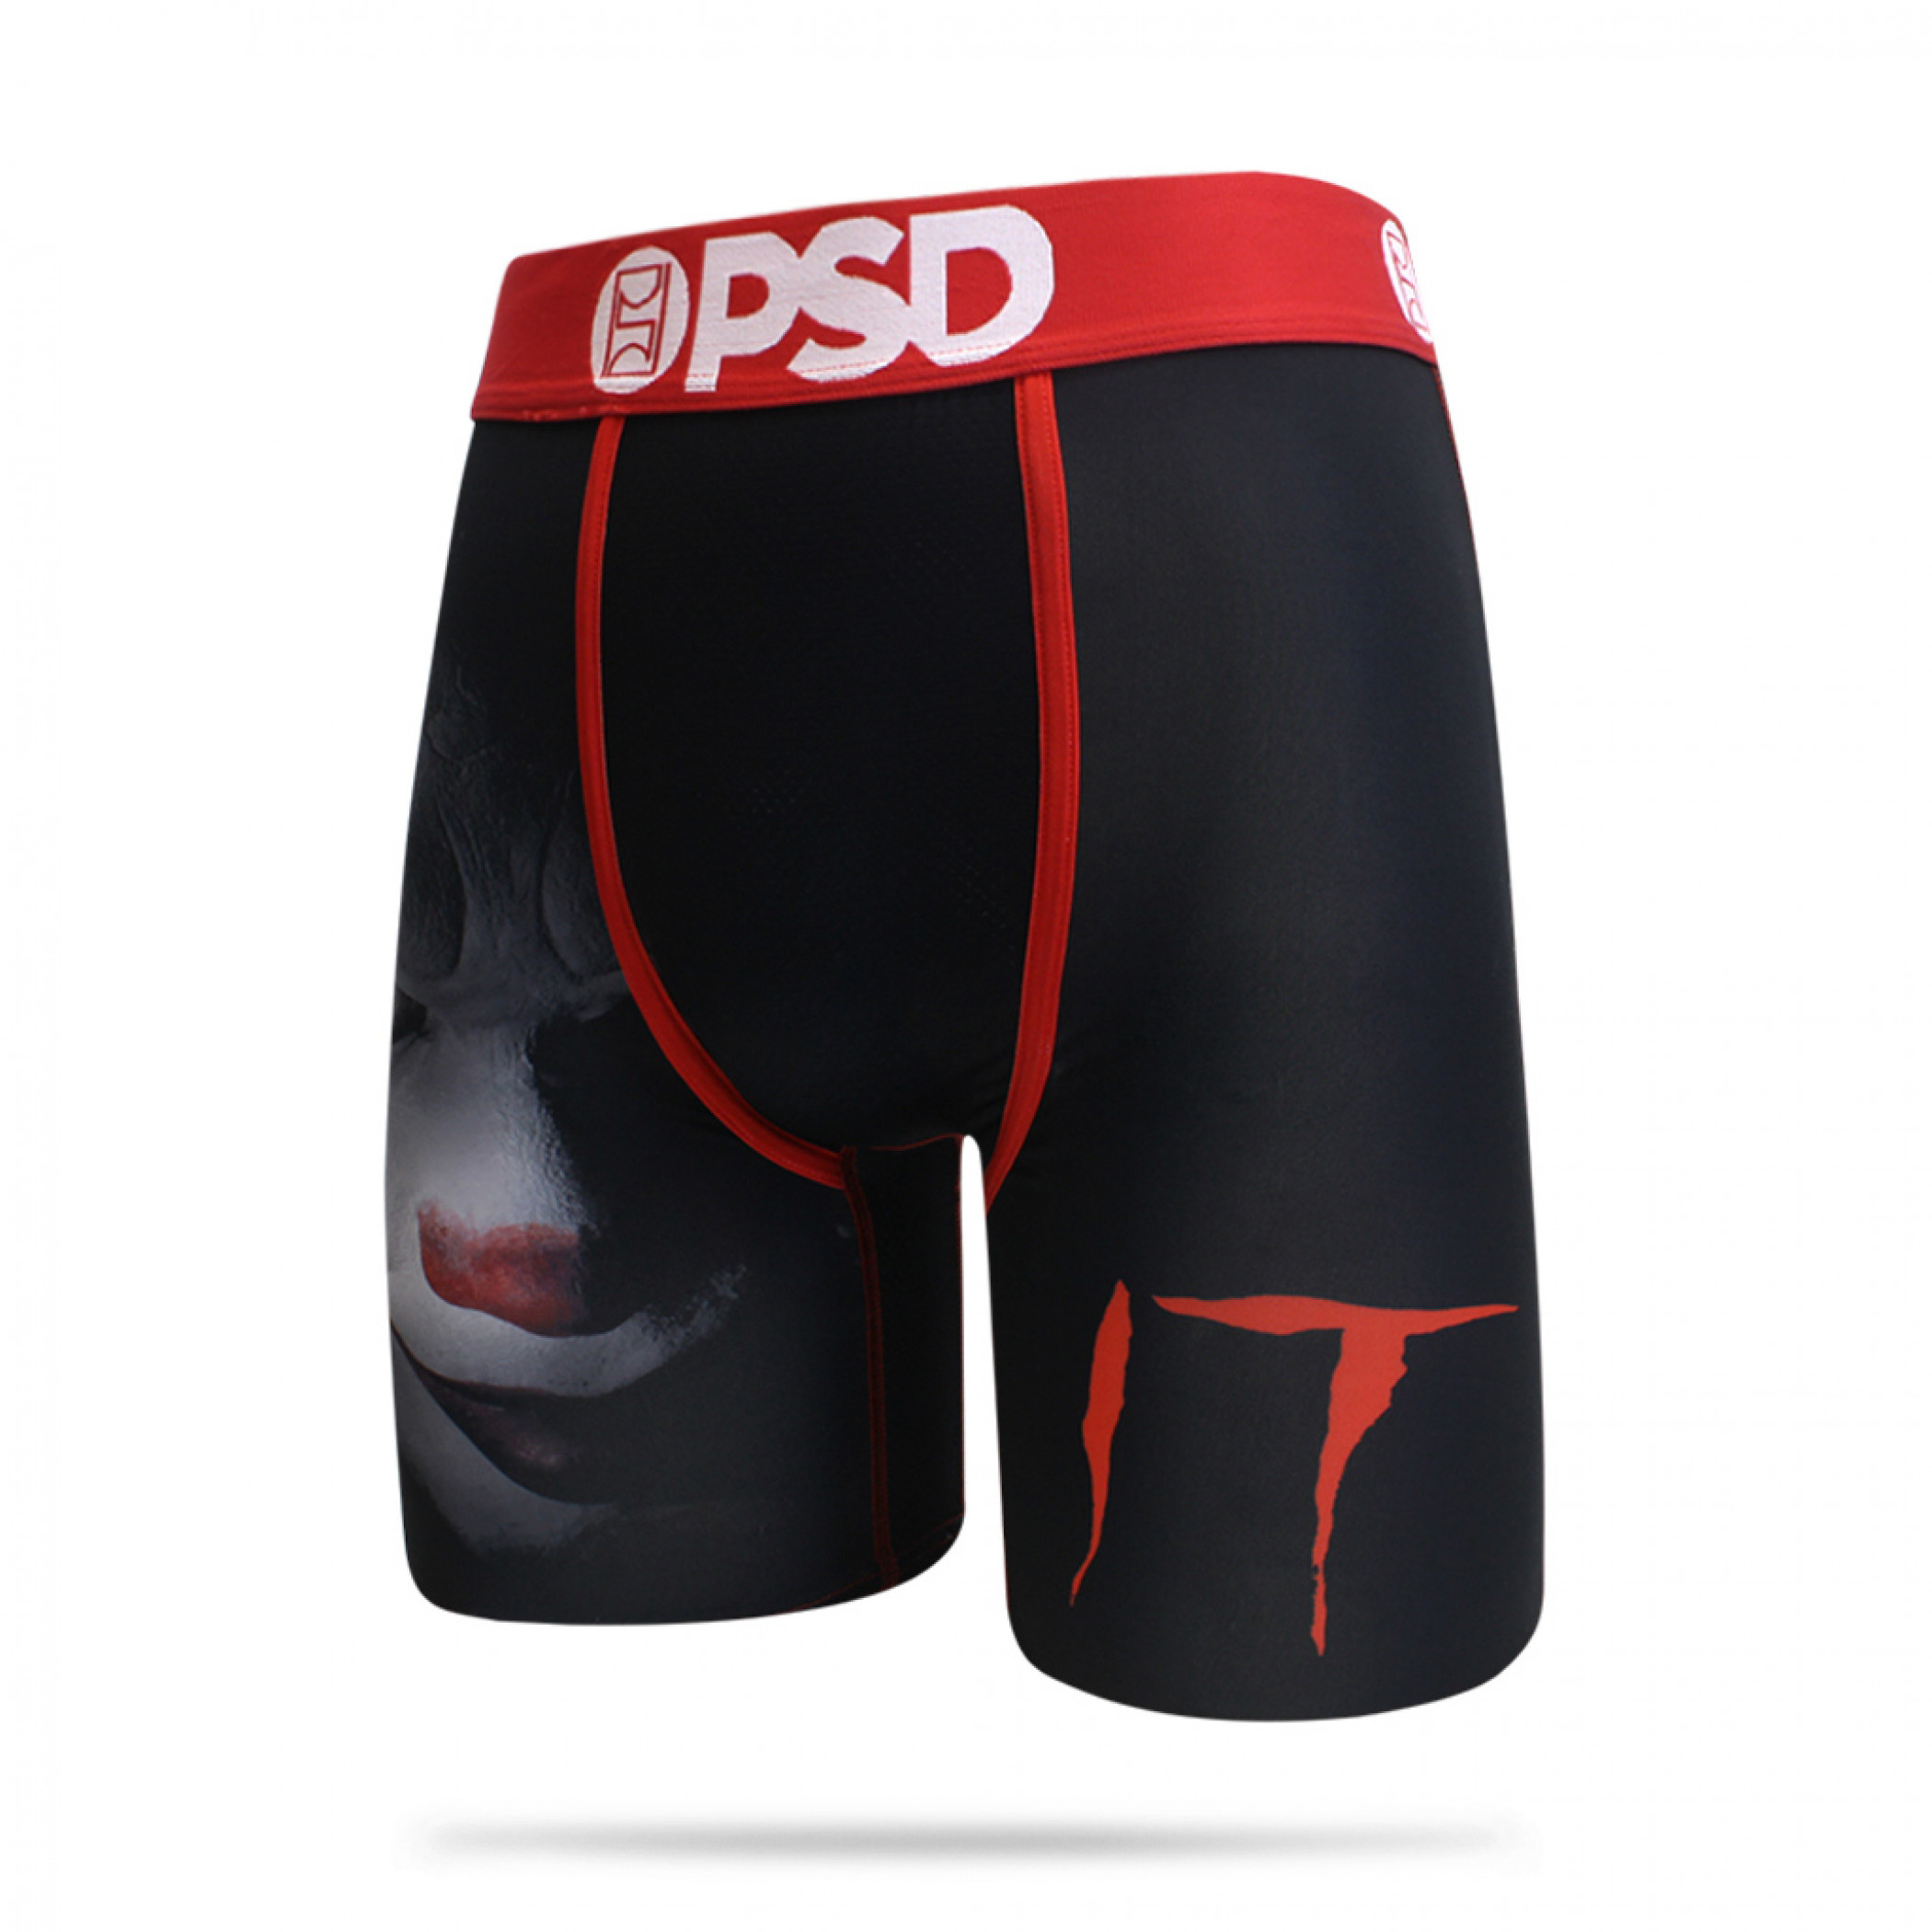 IT Pennywise the Clown PSD Boxers Briefs